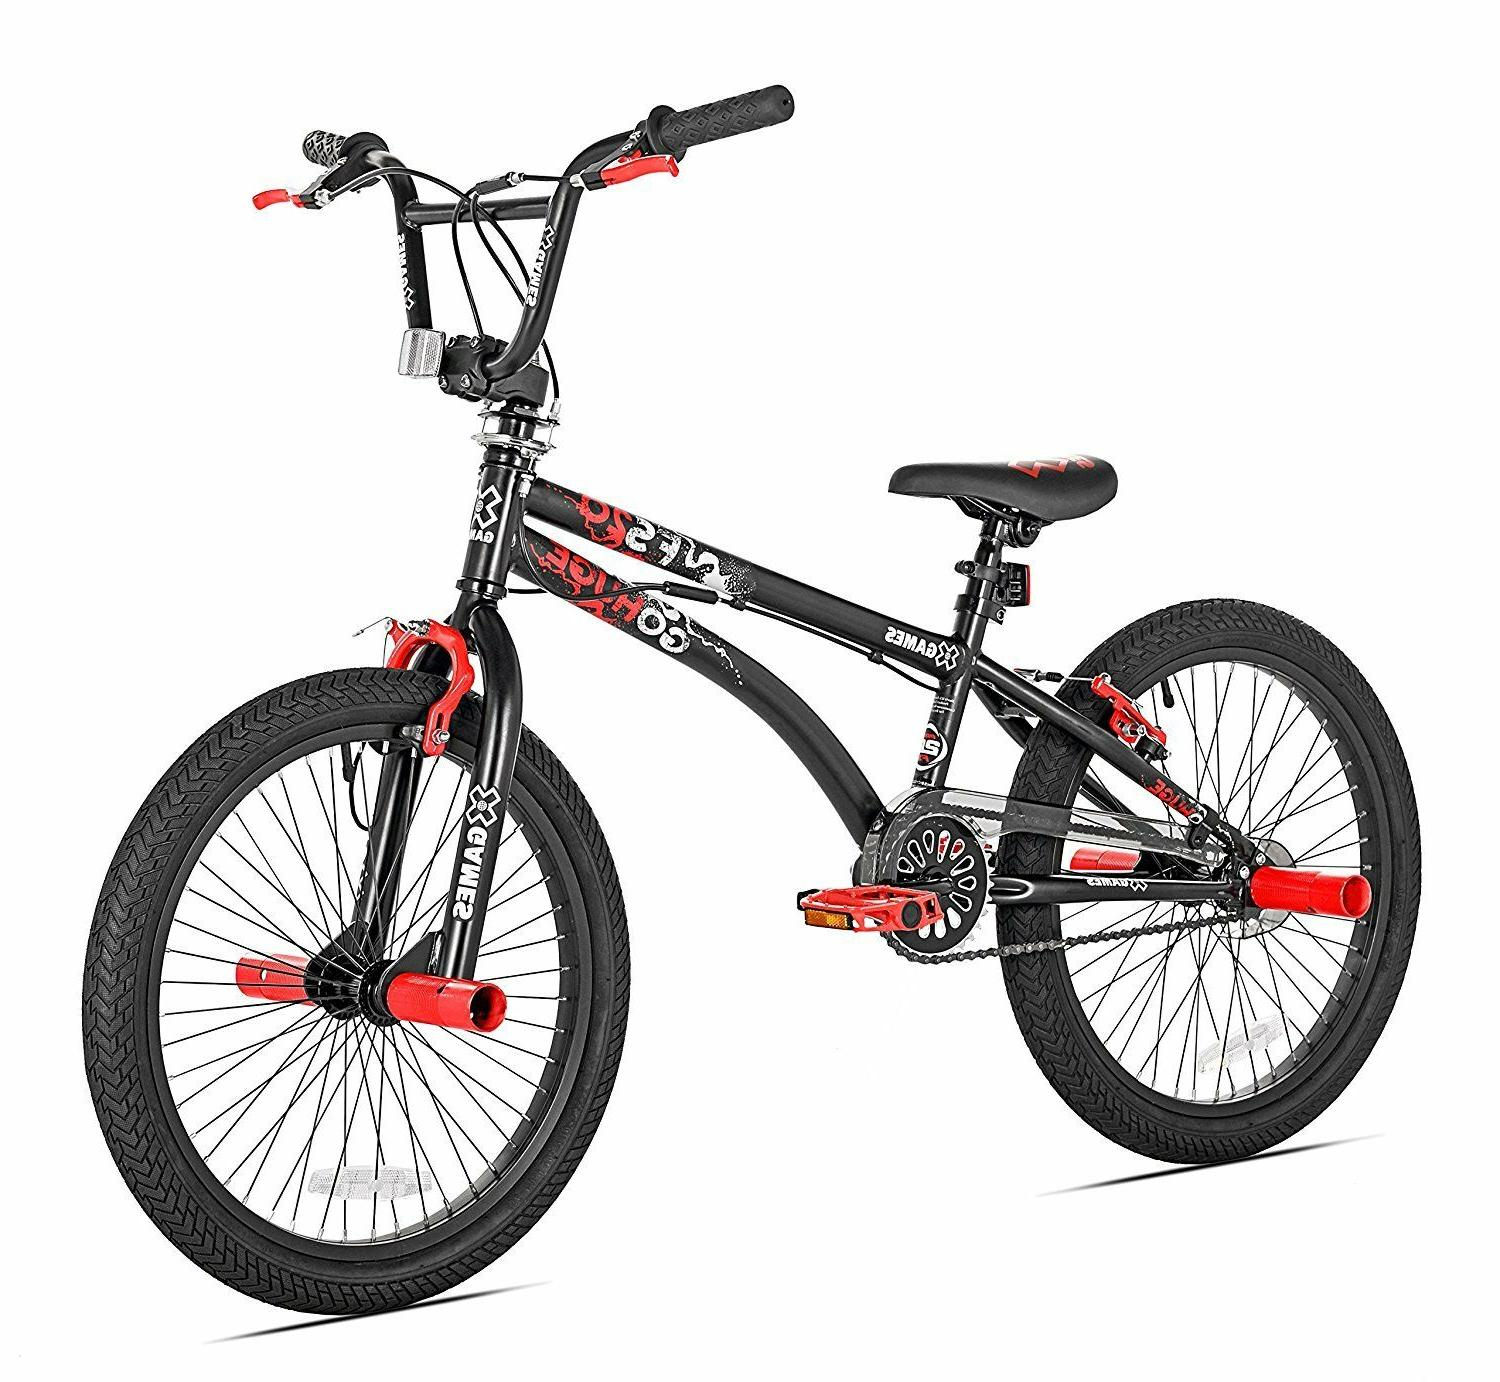 x games 32022 bmx freestyle bicycle 20